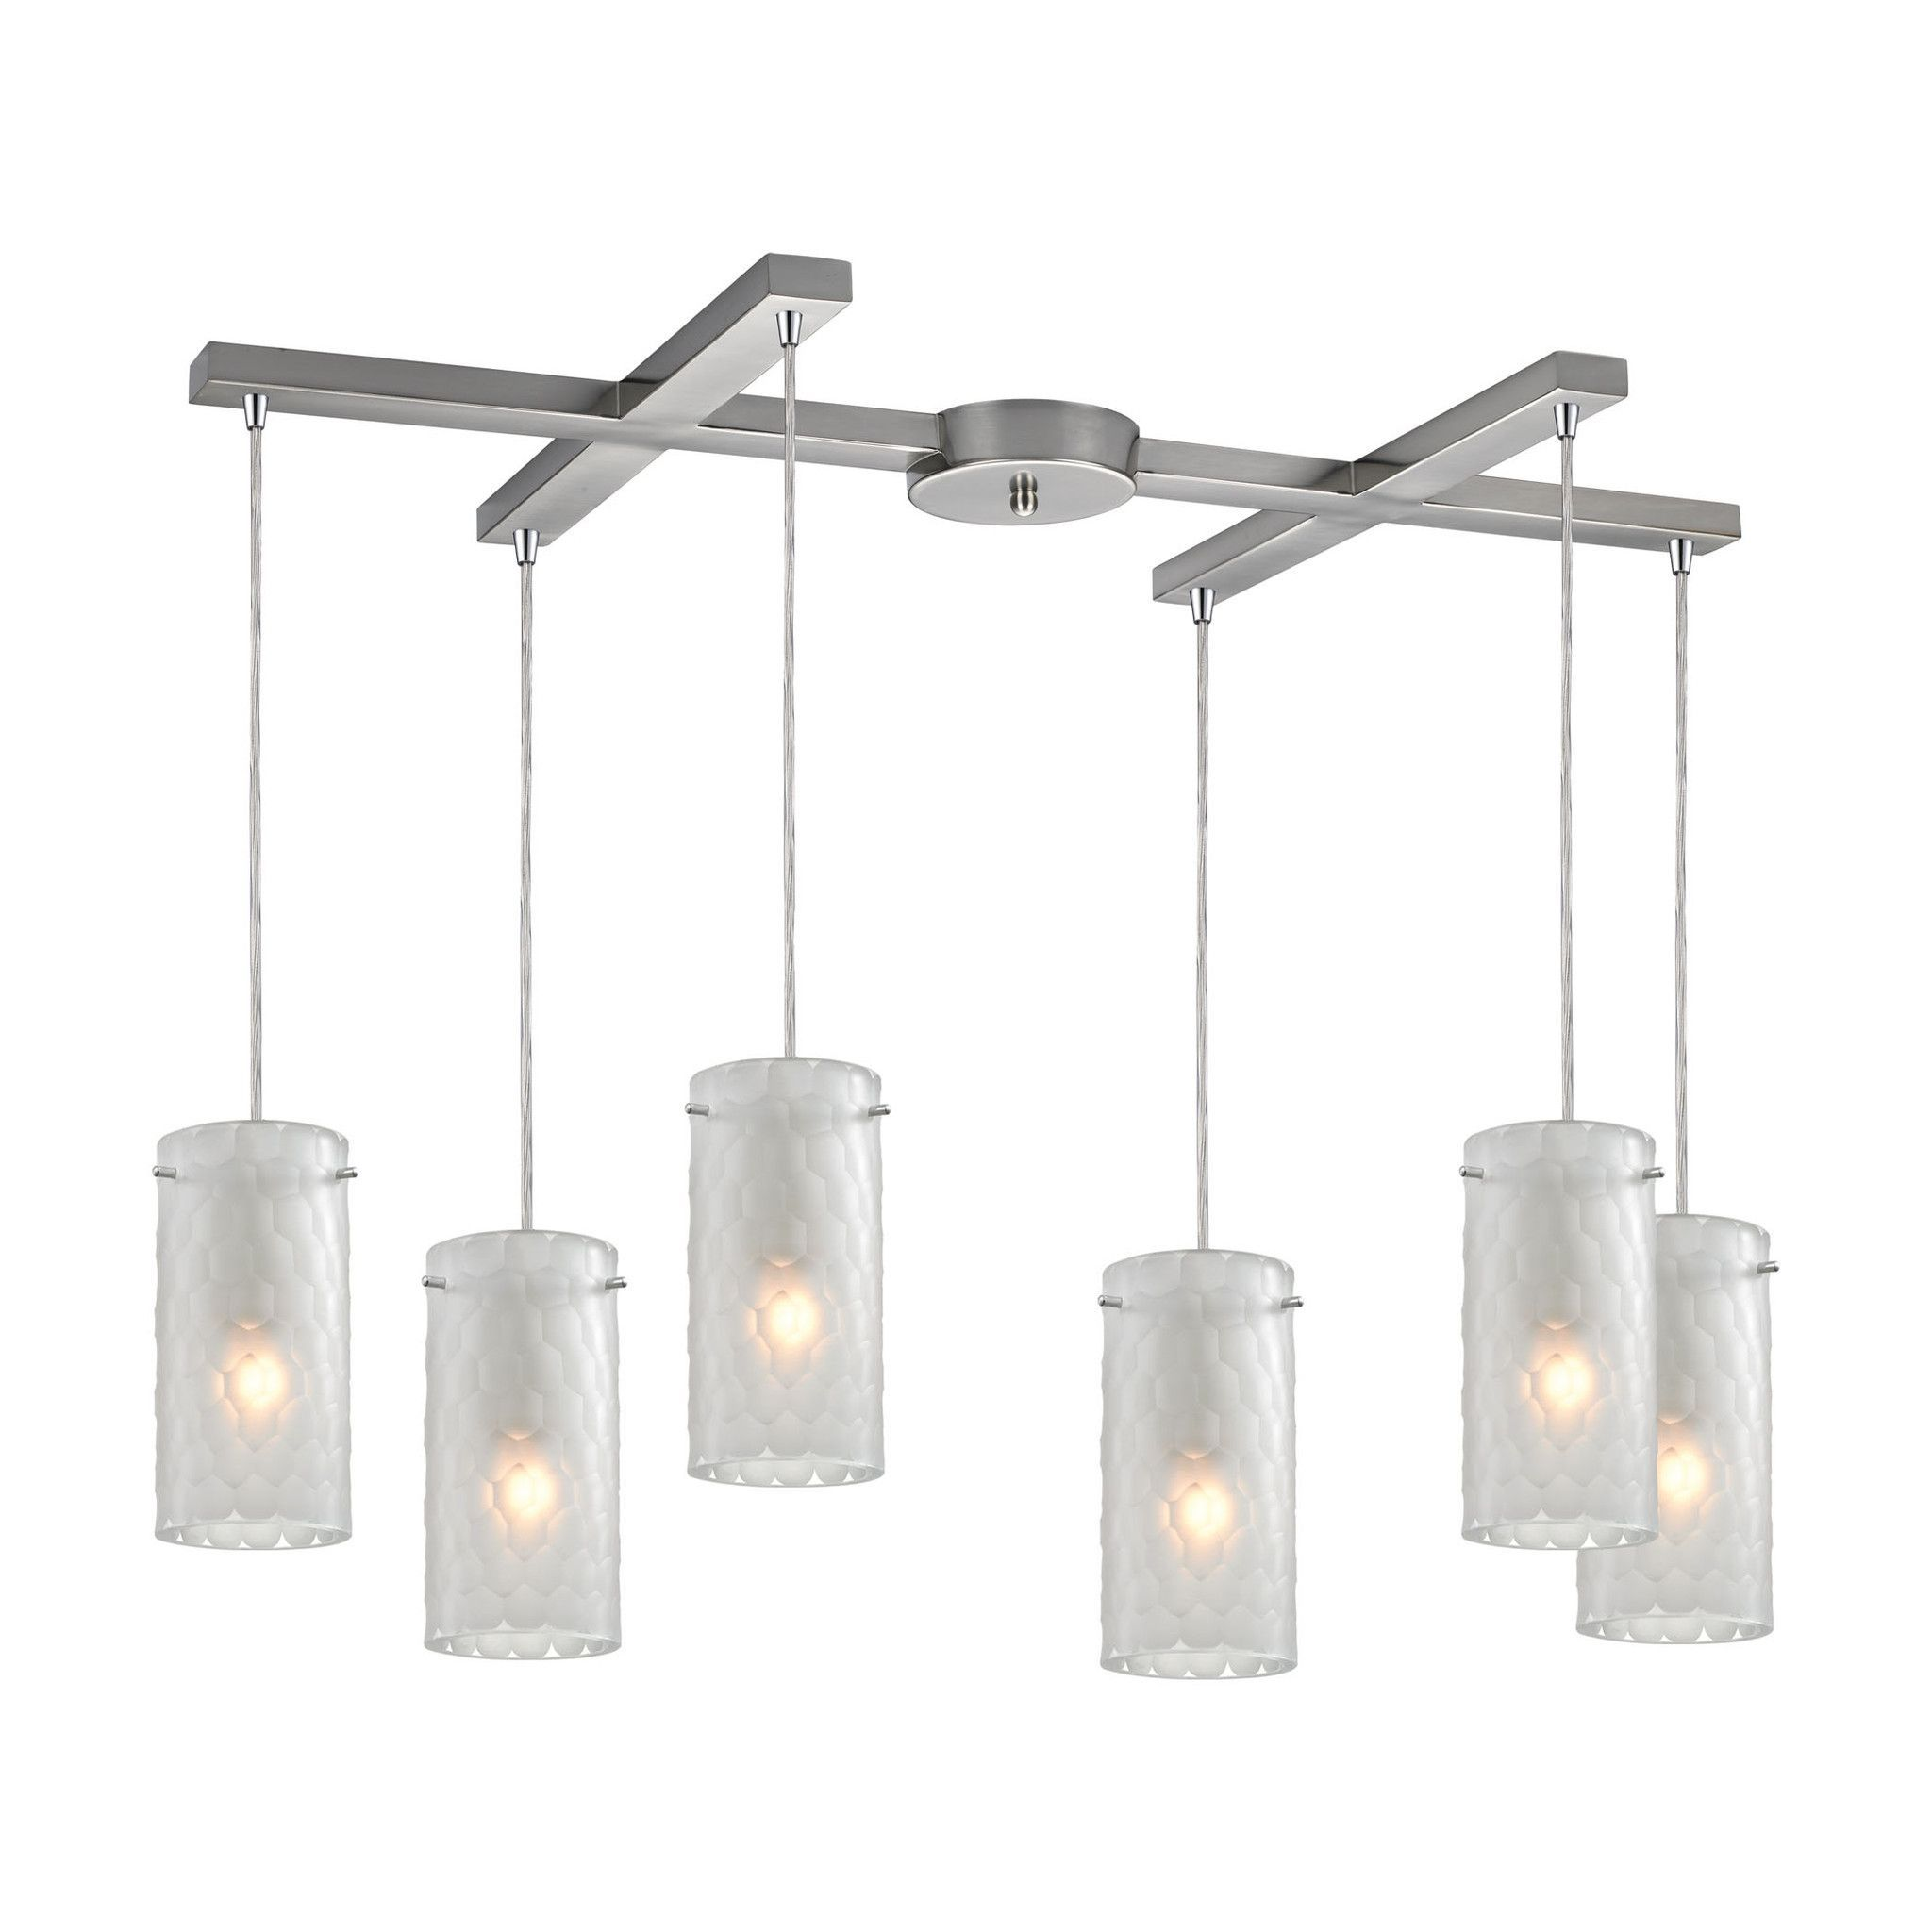 ELK Lighting 10243/6FC Synthesis Collection Satin Nickel Finish